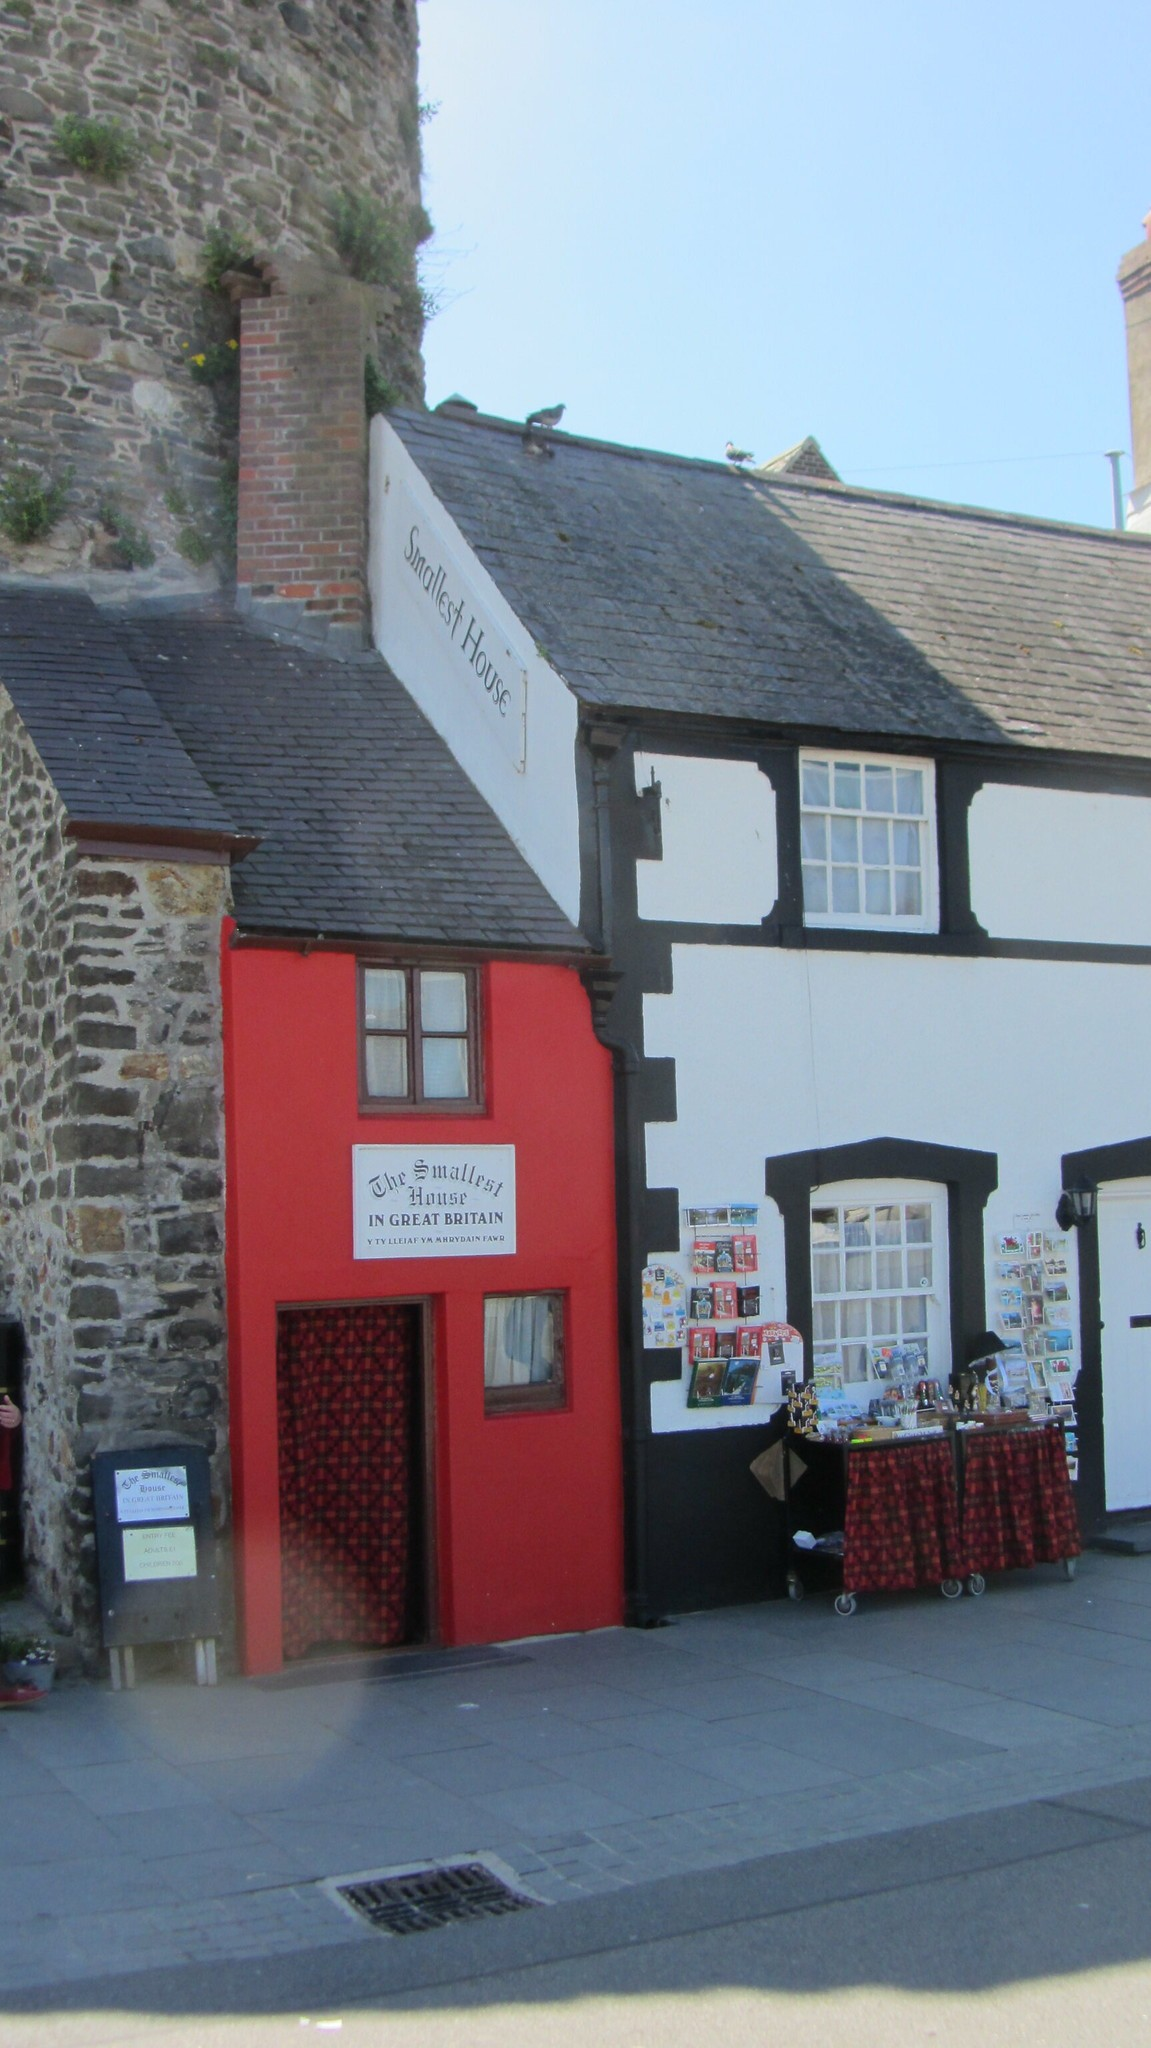 The petit red house becomes a highlight of the street. Photo: Unusual Places